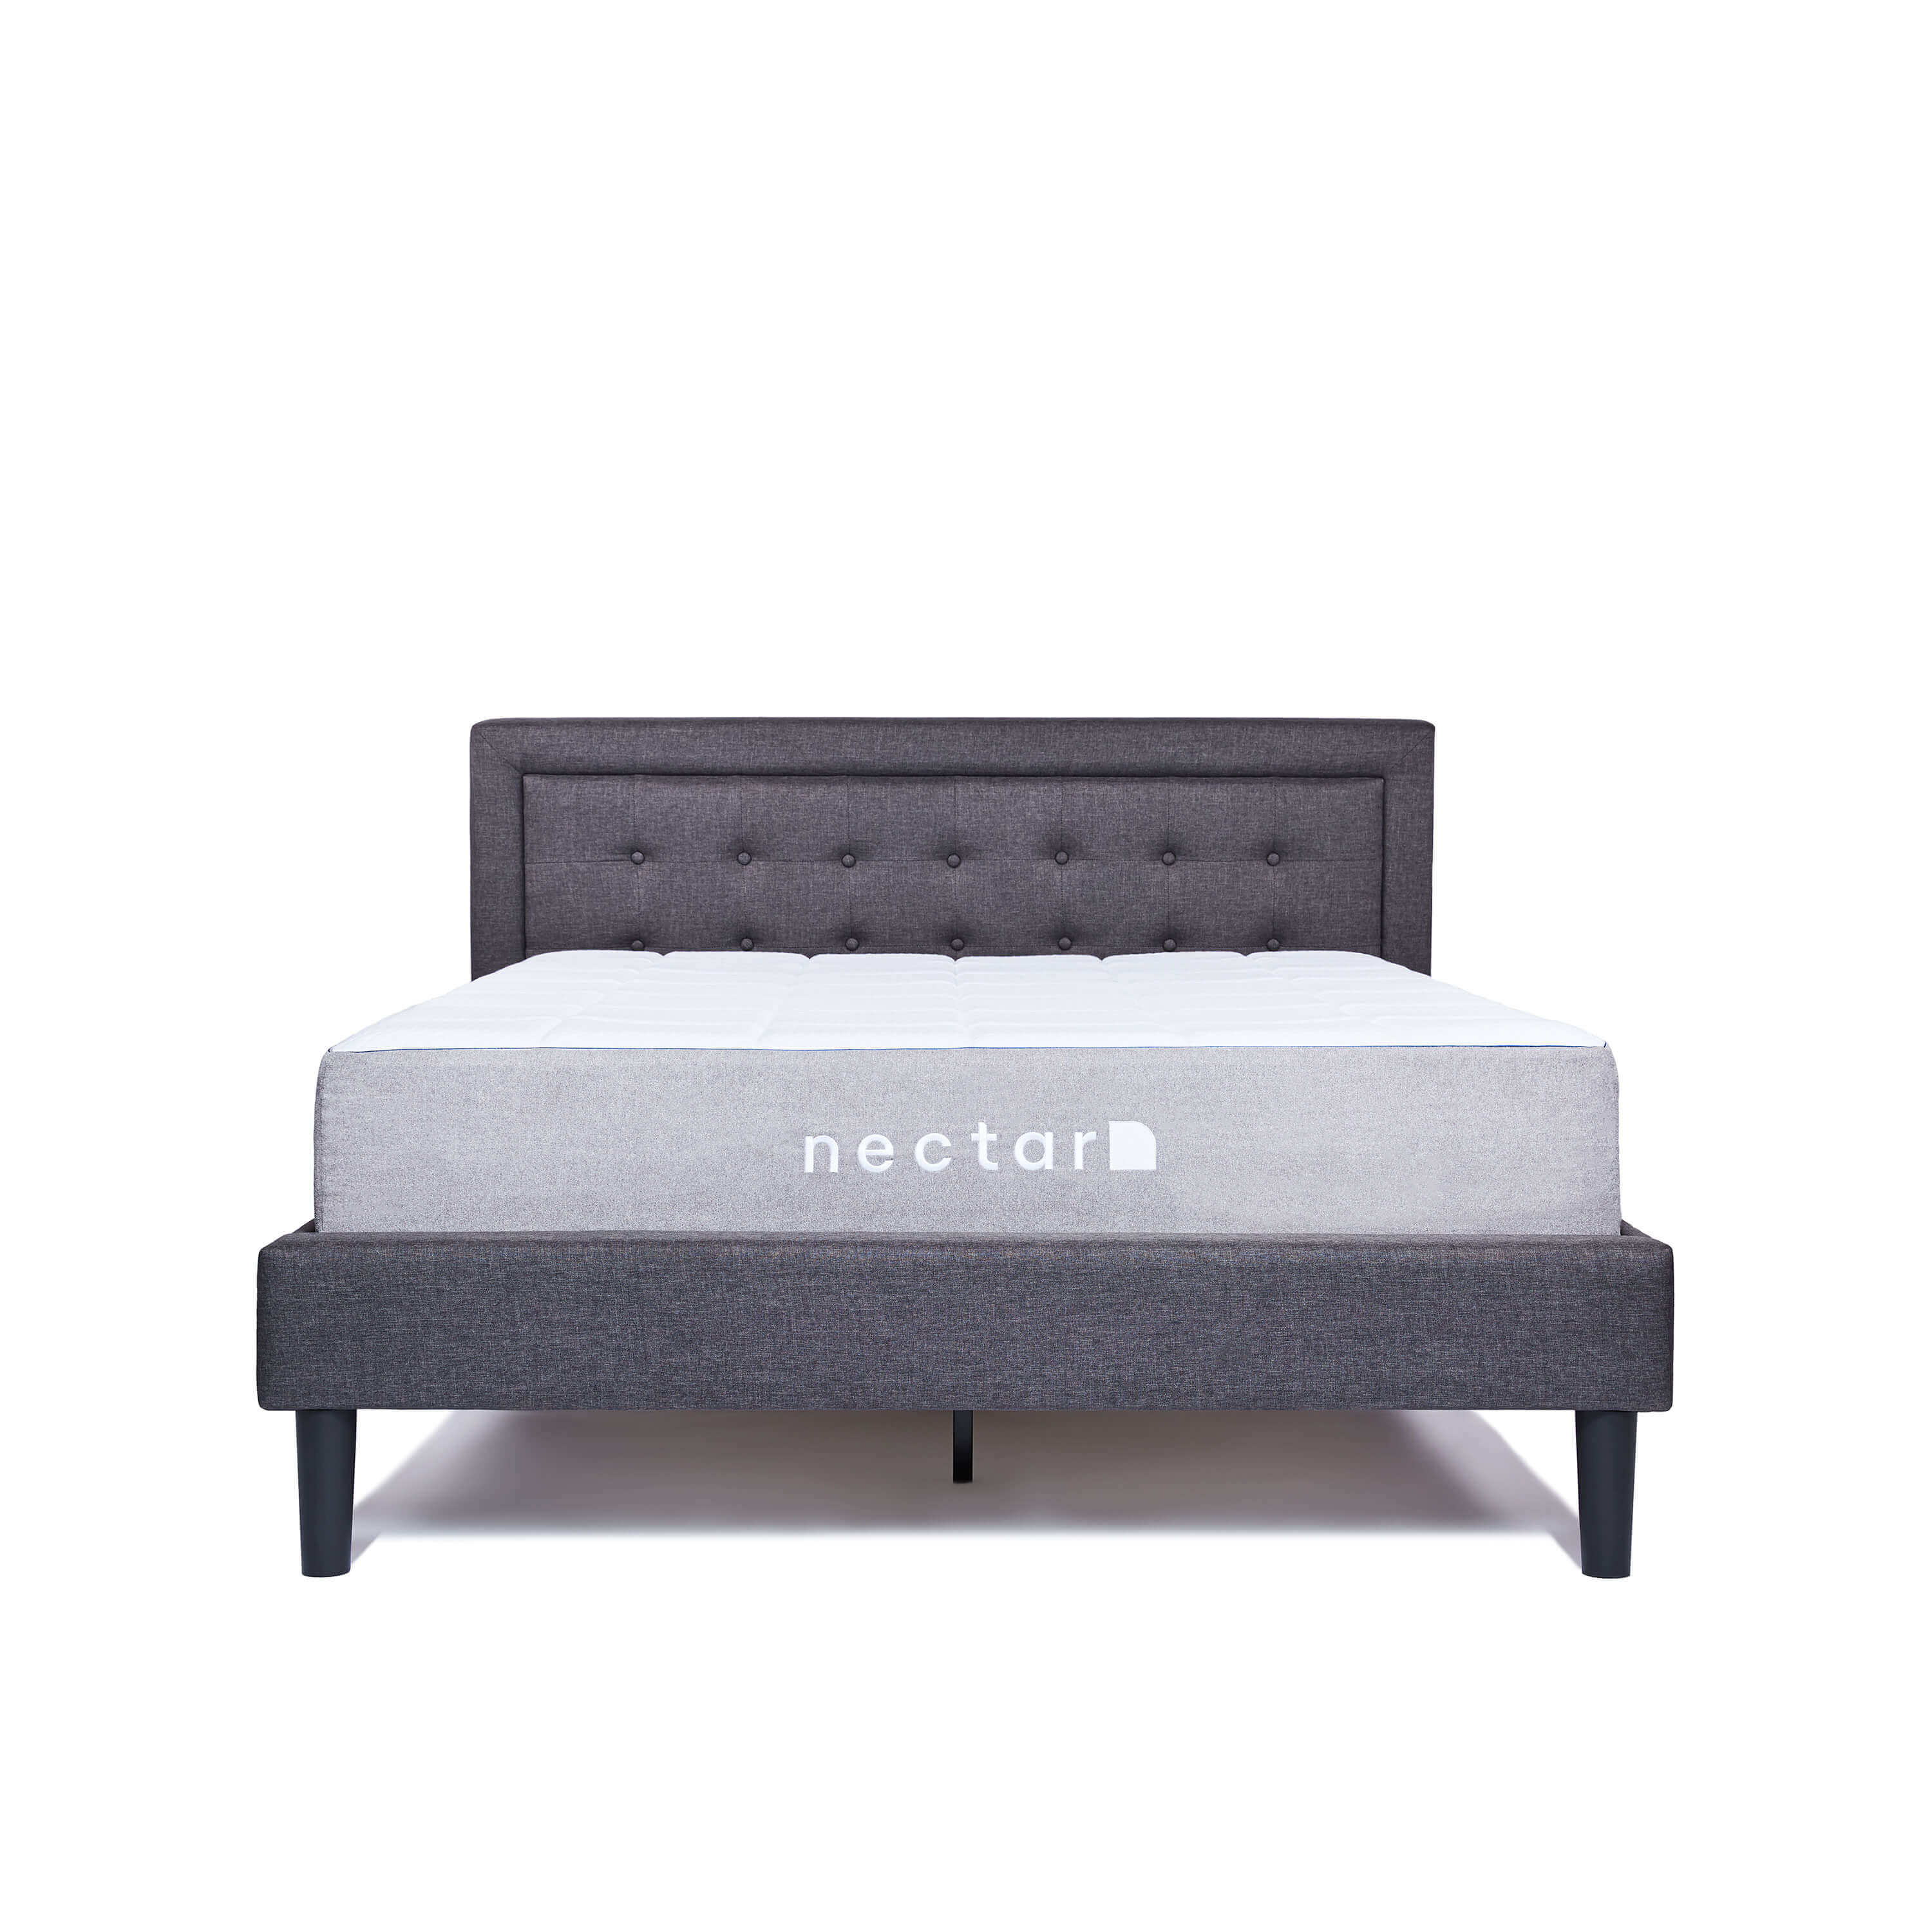 Image of Nectar Full Bed Frame With Headboard - Grey